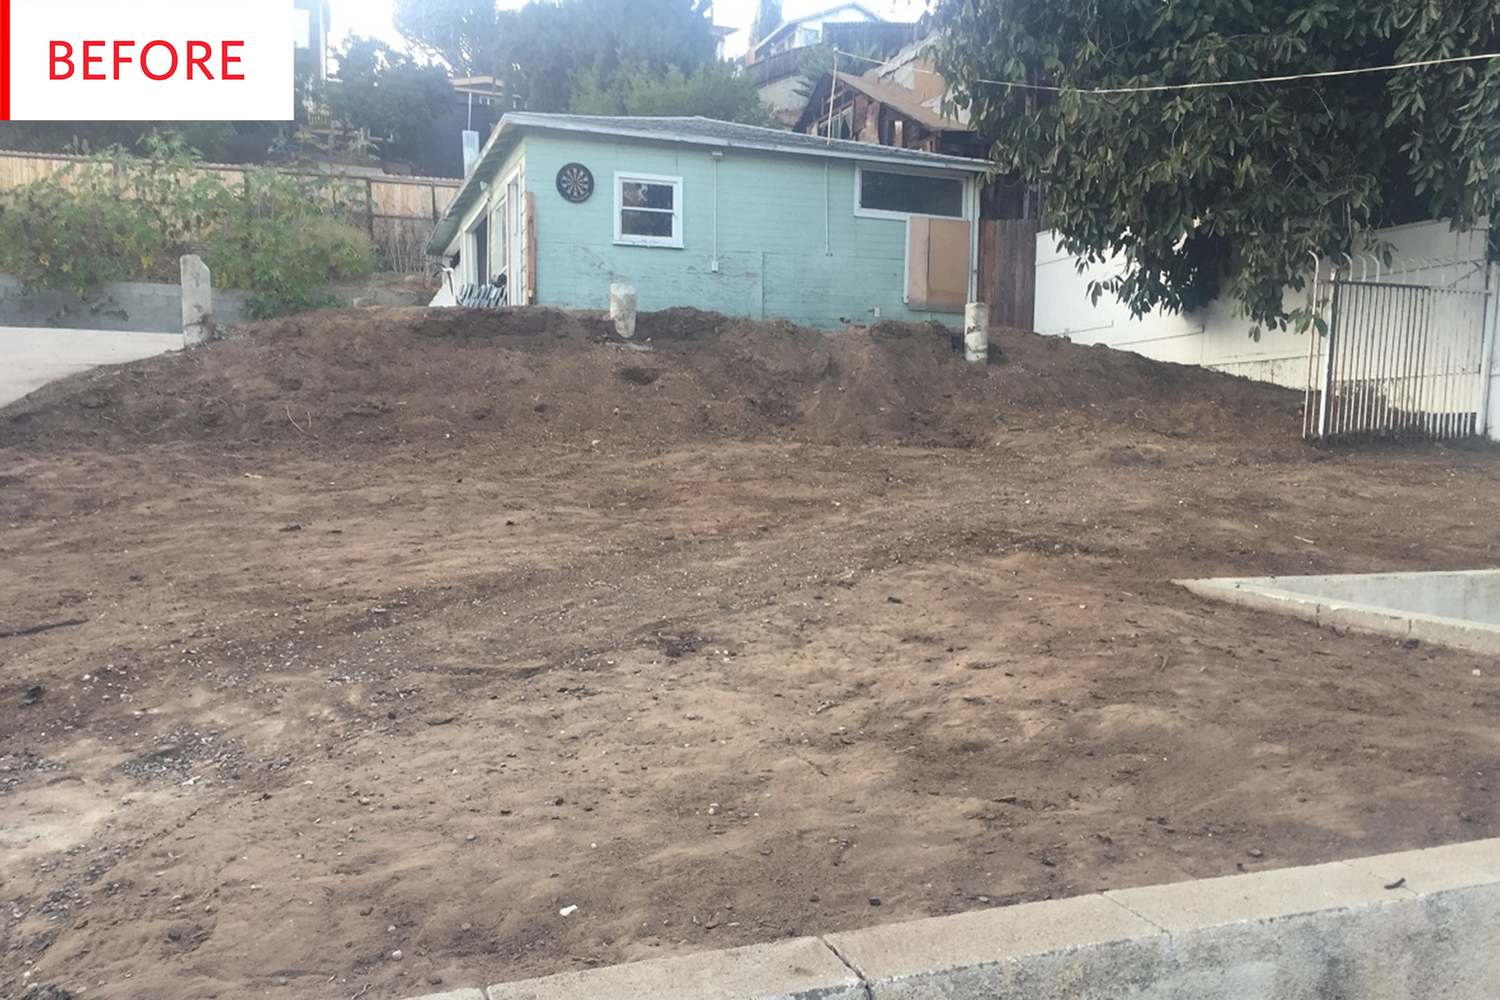 Before And After A Massive Dirt Pile Becomes A Dreamy Outdoor Escape Backyard Backyard Makeover Backyard Patio